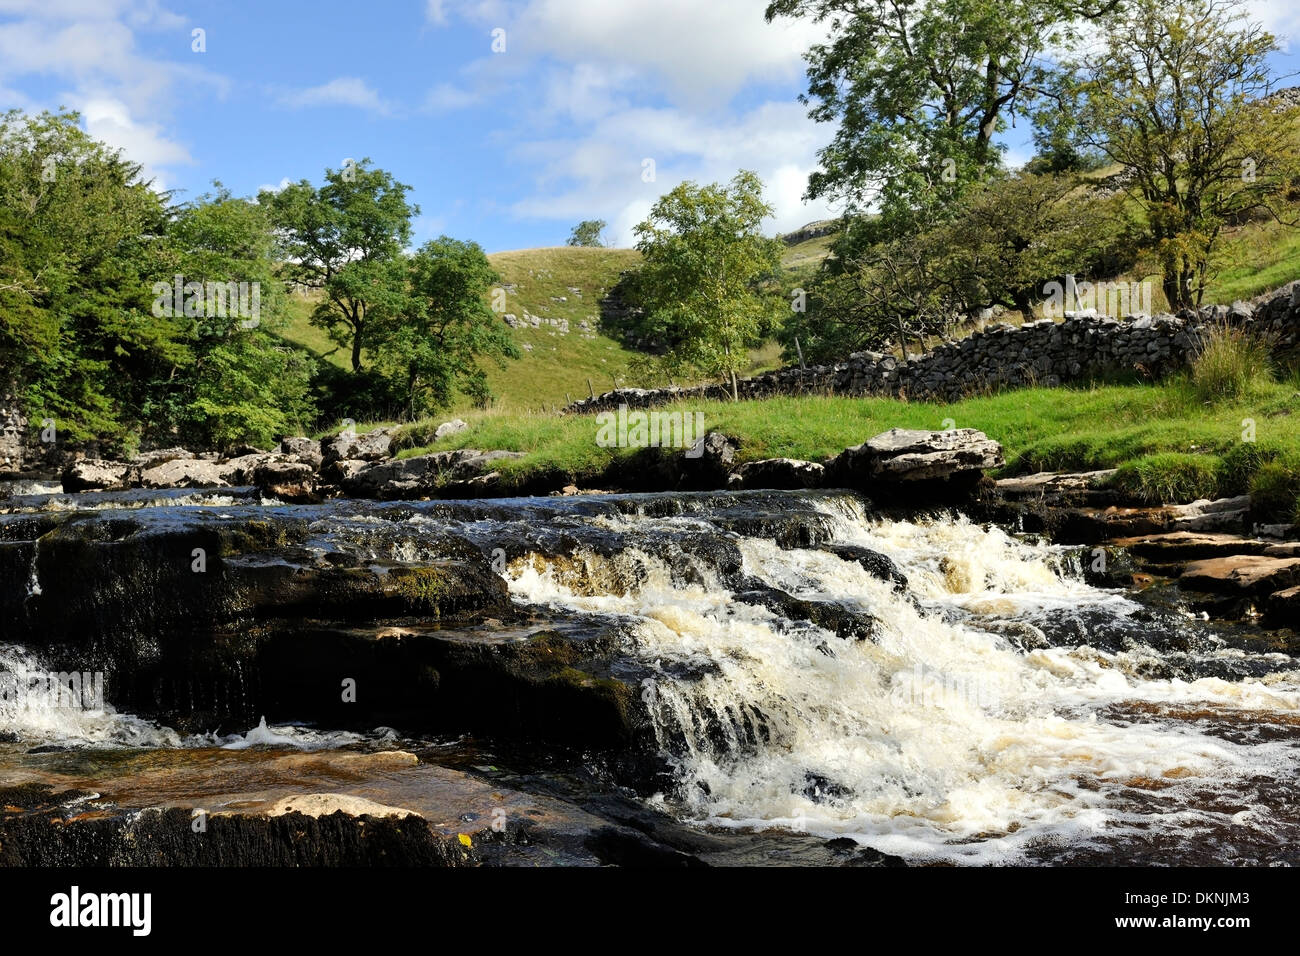 Water cascading above Thornton Force, Ingleton, Yorkshire Dales National Park, England - Stock Image